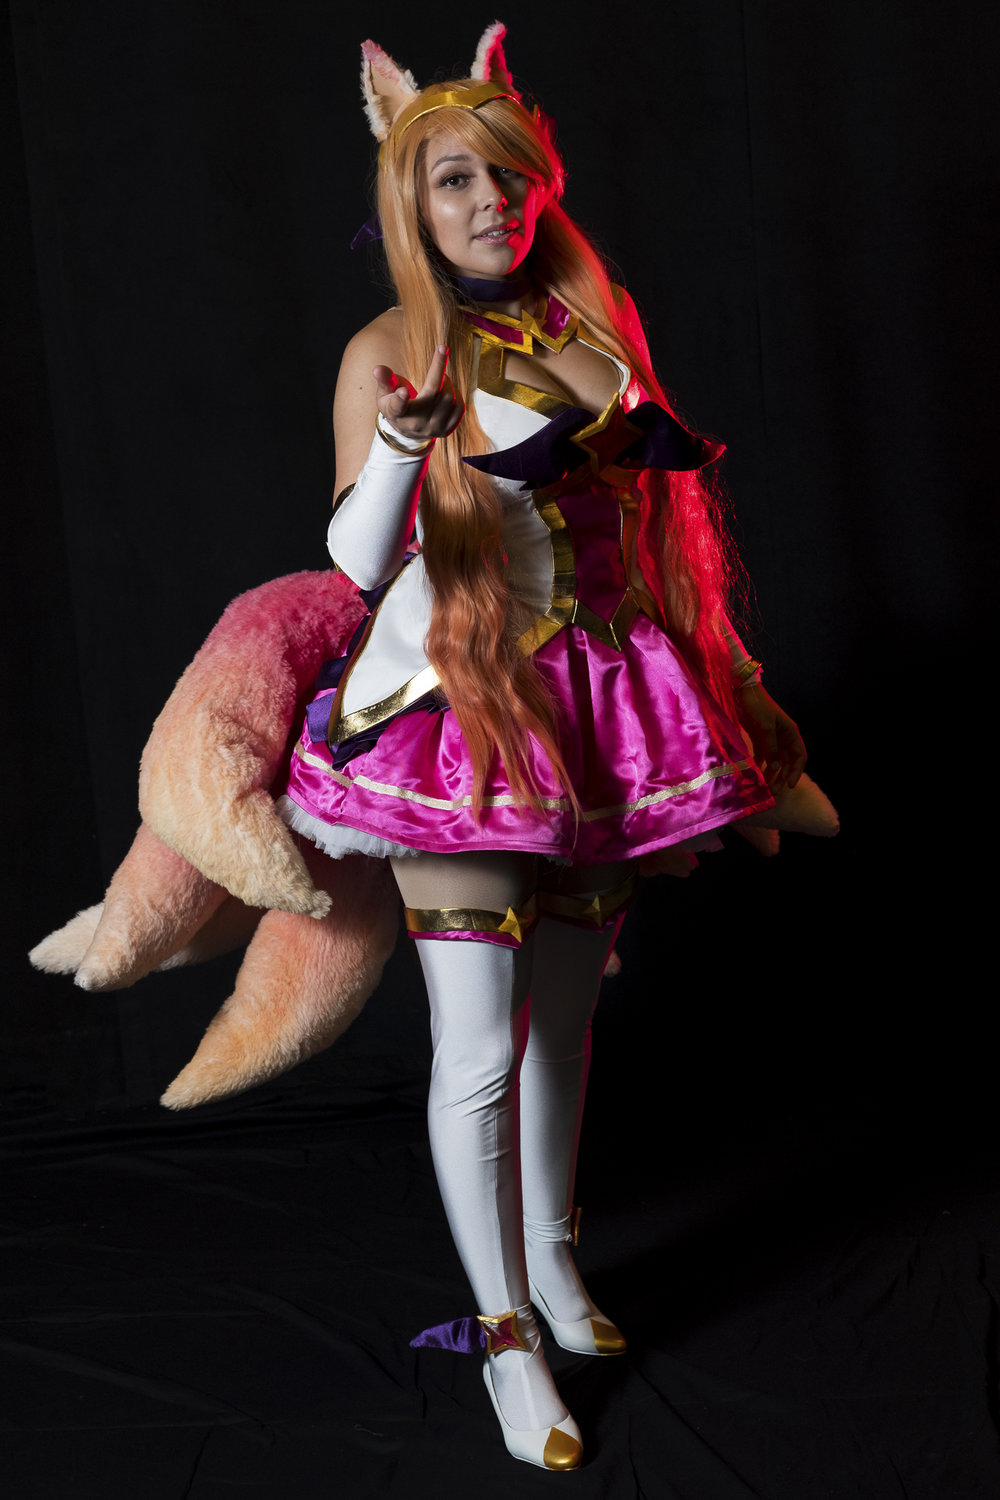 Mermaid Child in Star Guardian Ahri cosplay at Soundcheck Austin